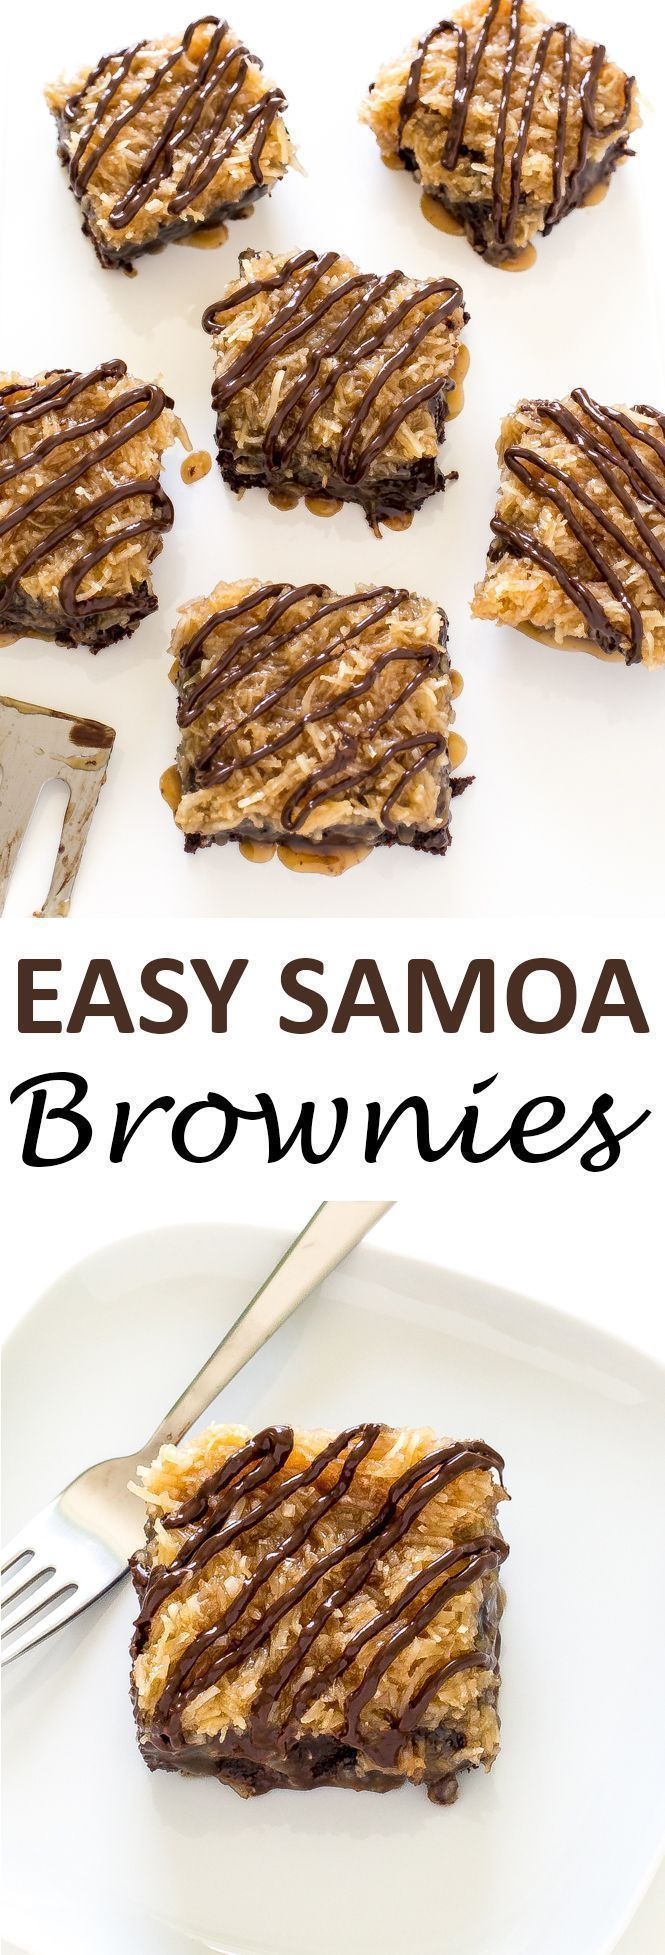 Easy Samoa Brownies.